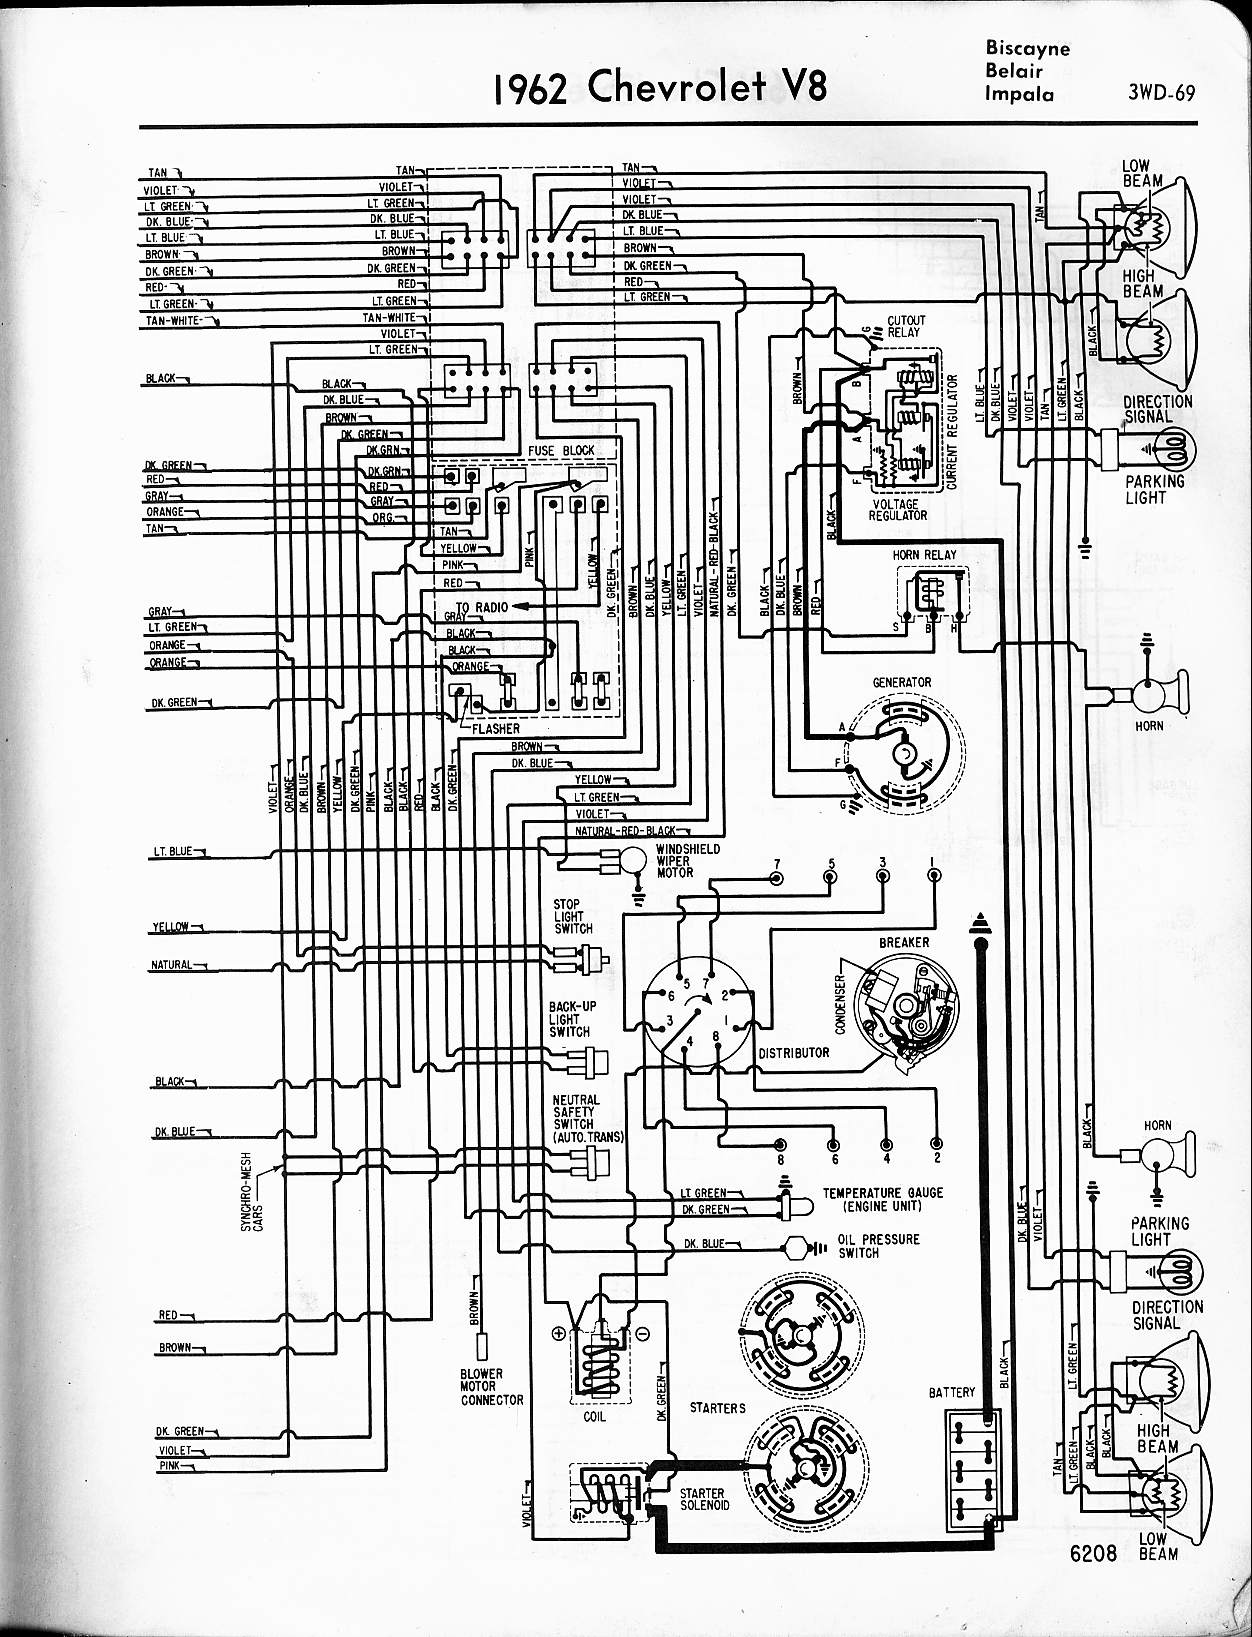 57 65 chevy wiring diagrams 1962 v8 biscayne belair impala right